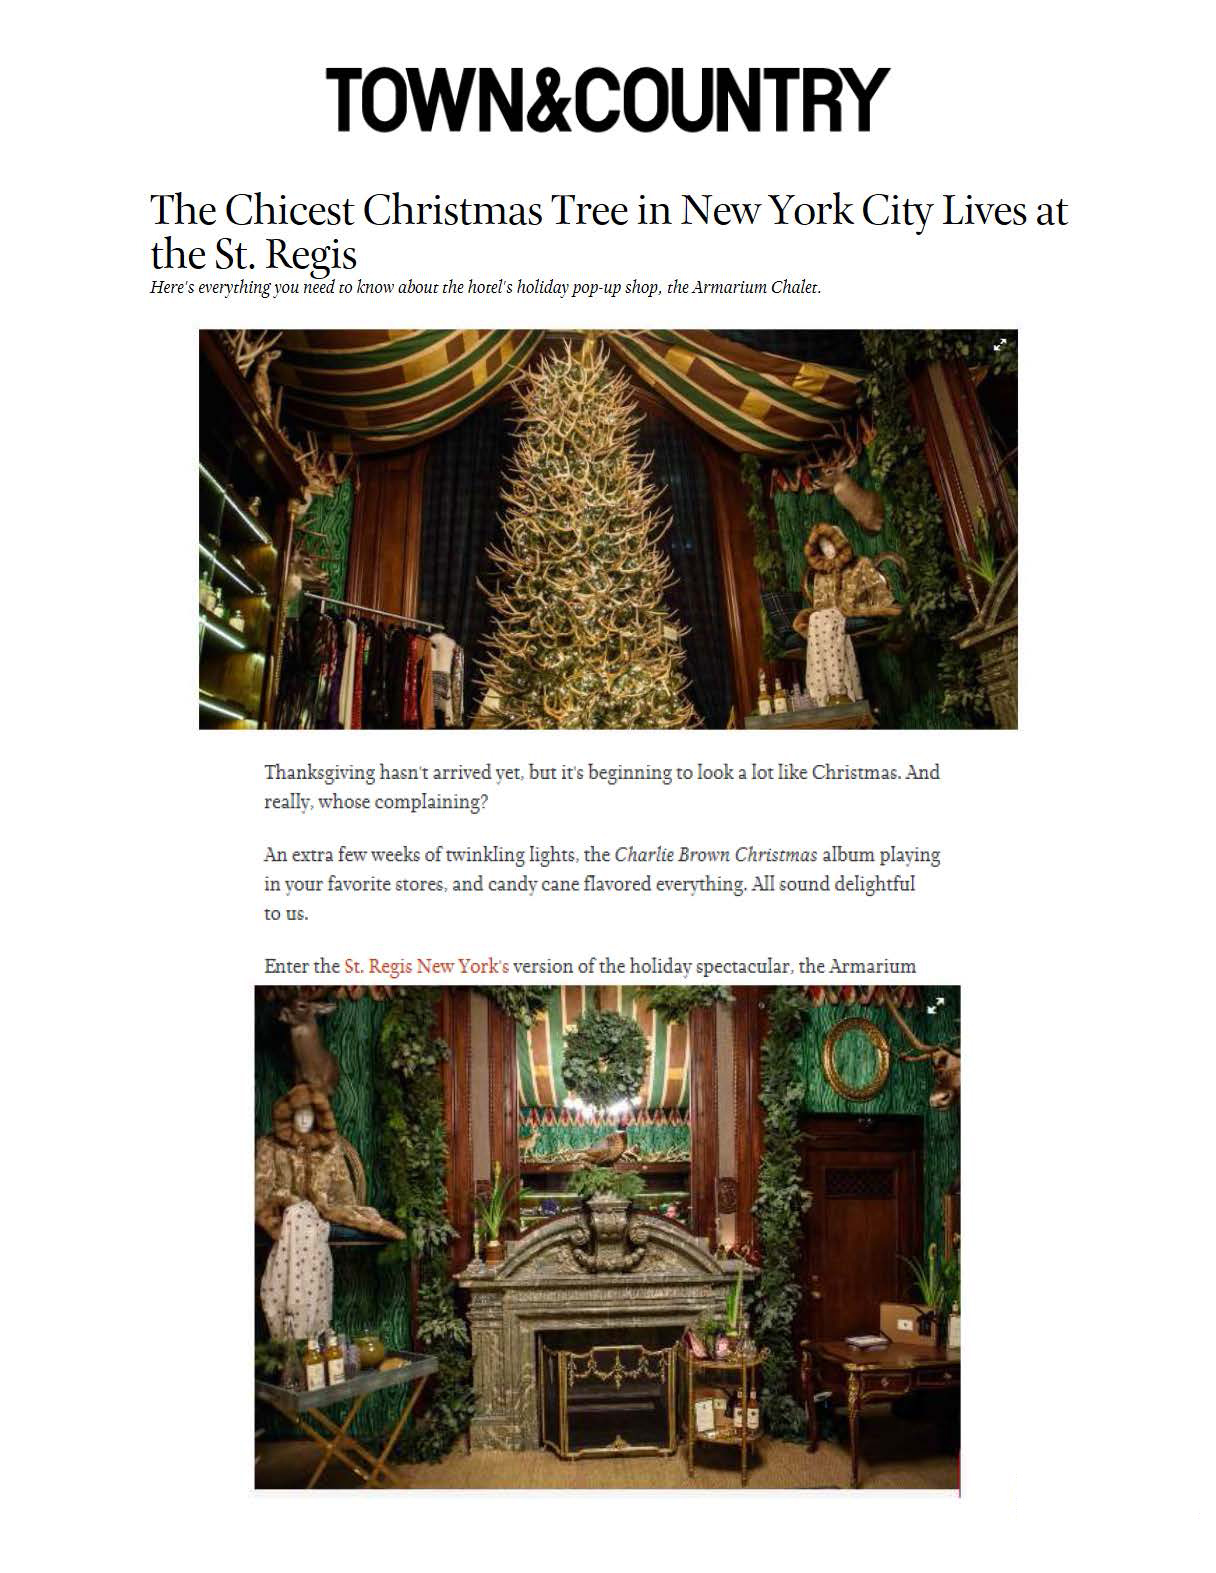 Pages from Town&Country_ArmariumChalet_11.17 1 - edit 4.jpg